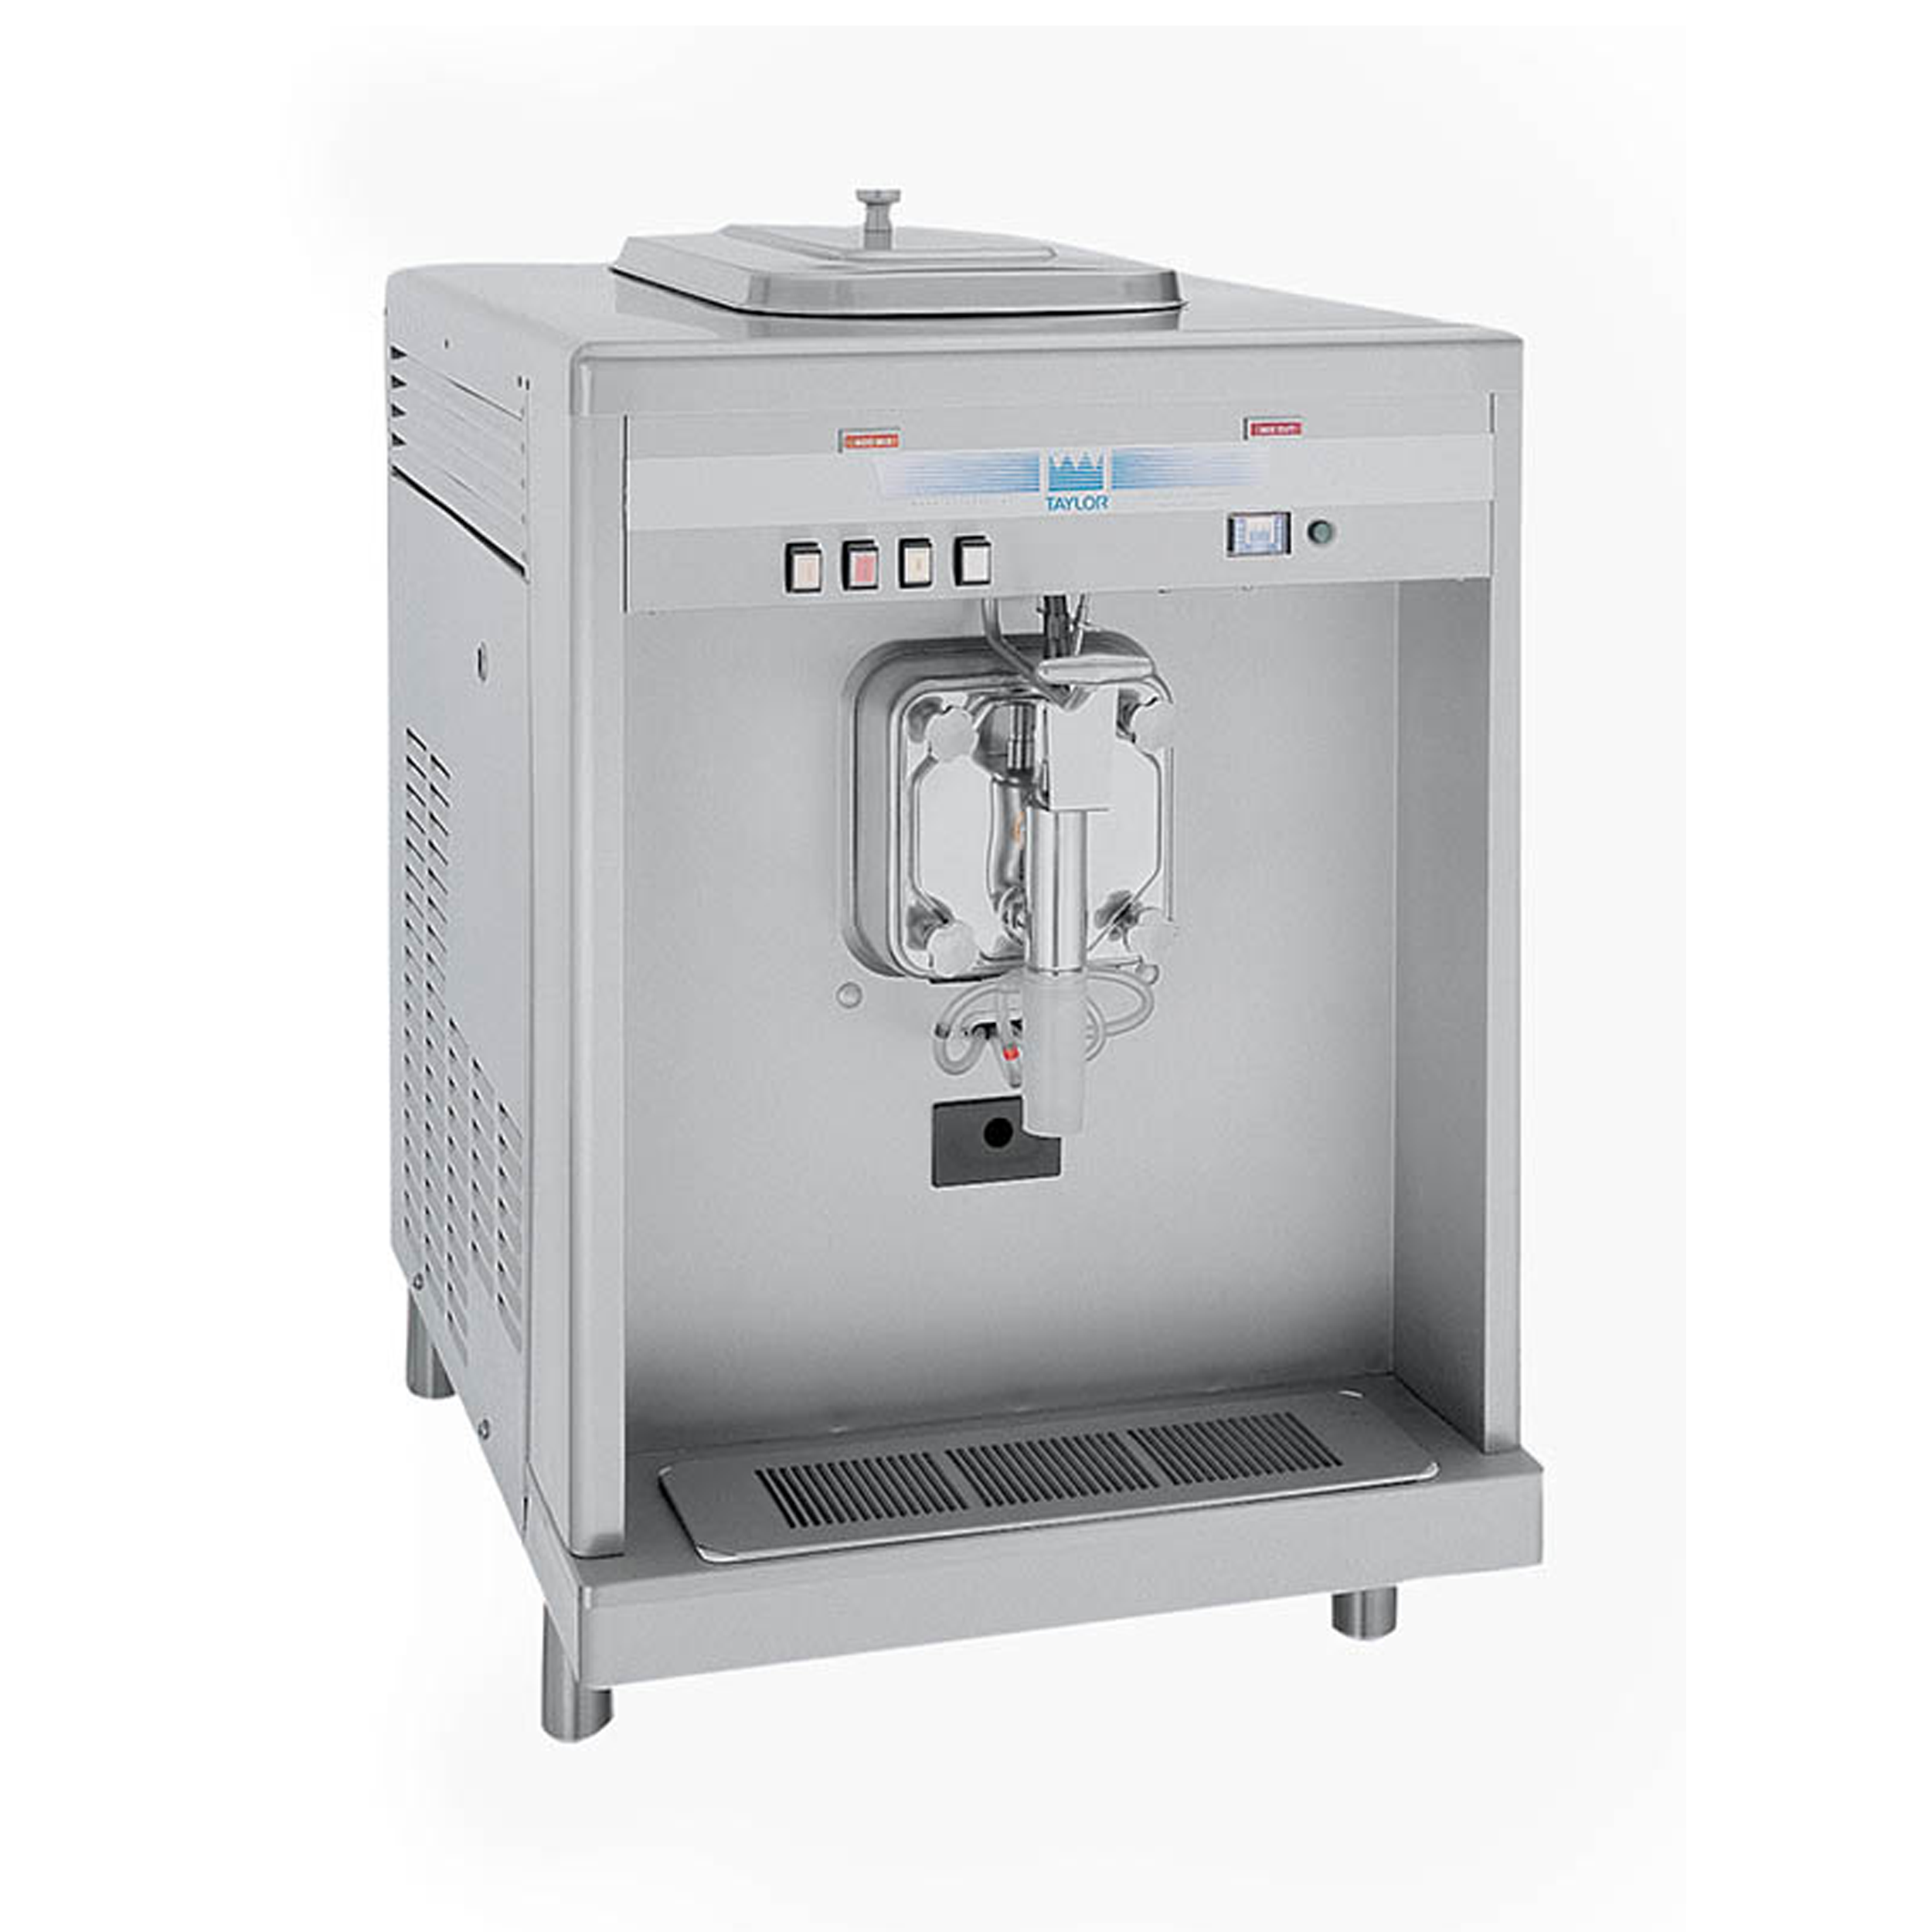 Model 62   Shake Freezer  Offer four separate shake flavors: chocolate, strawberry, vanilla (unflavored shake mix) and an optional flavor.  KEY SPECIFICATIONS:   Finished Products : Shake   Installation : Countertop   Number of Flavors : 4   Freezing Cylinder QTY : 1   Freezing Cylinder Size (qt/l) : 7/6.6